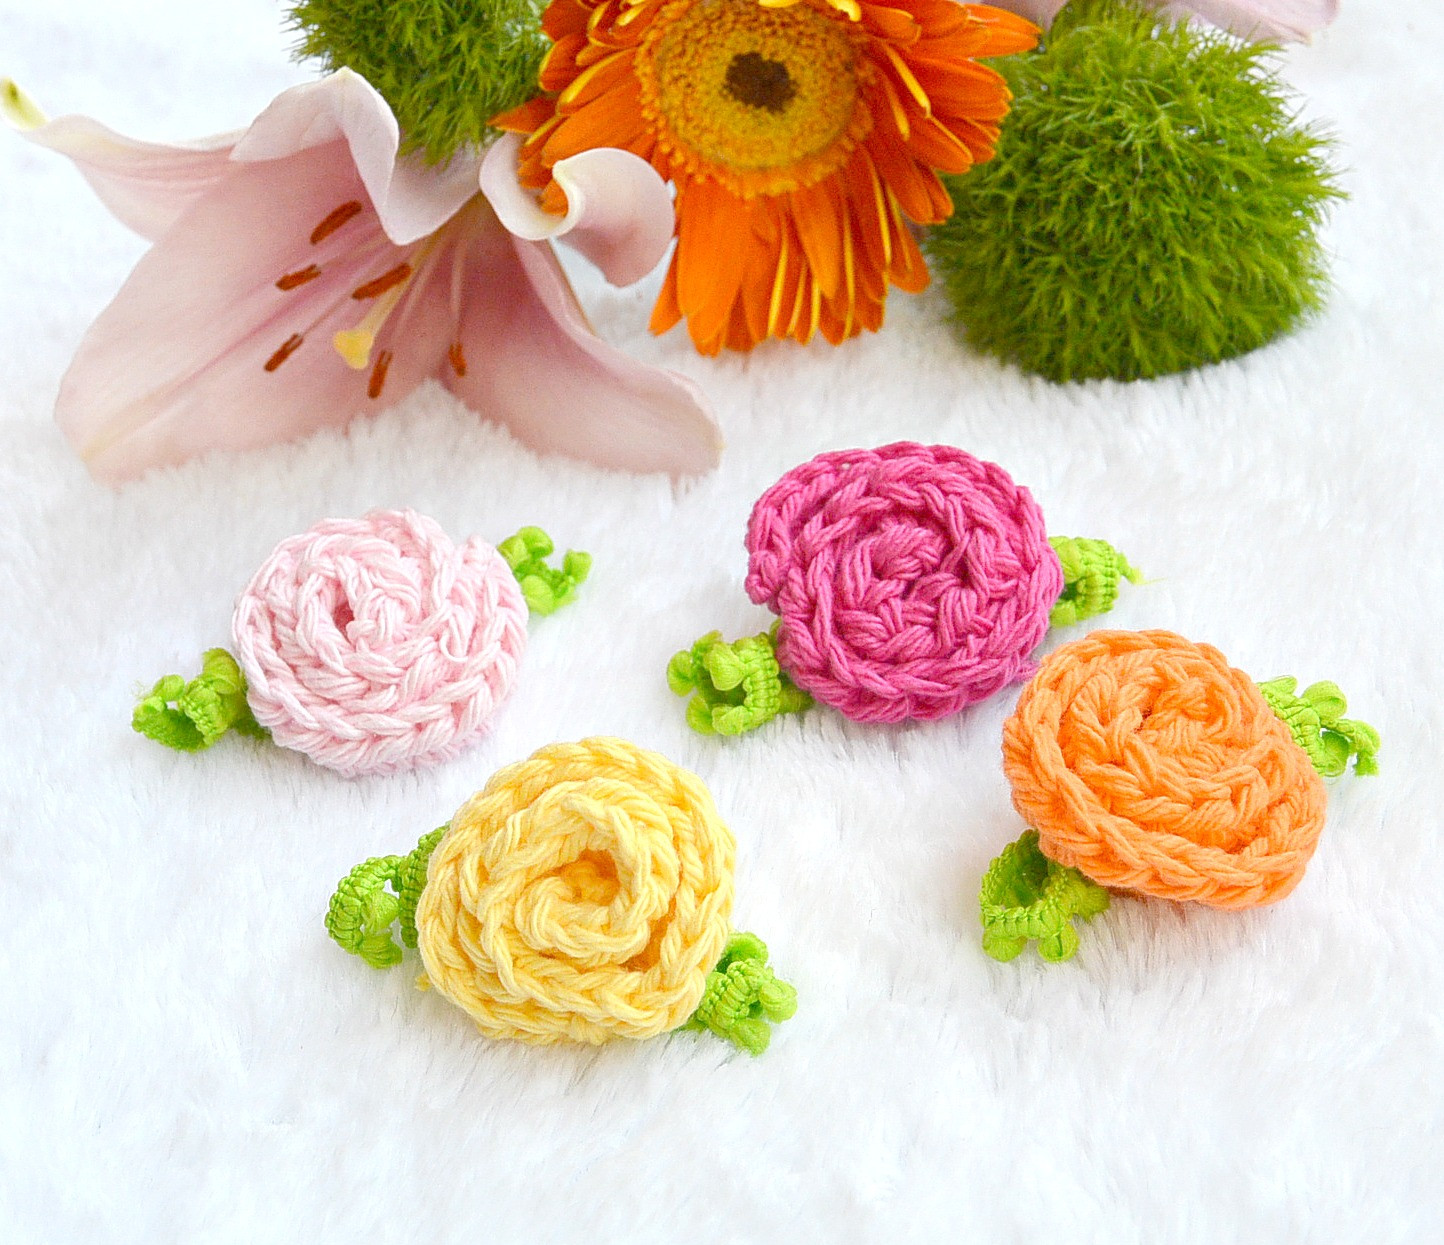 Crochet Small Flower Best Of Sweet Daisies Free Flower Crochet Pattern – Mama In A Stitch Of Luxury 50 Pictures Crochet Small Flower